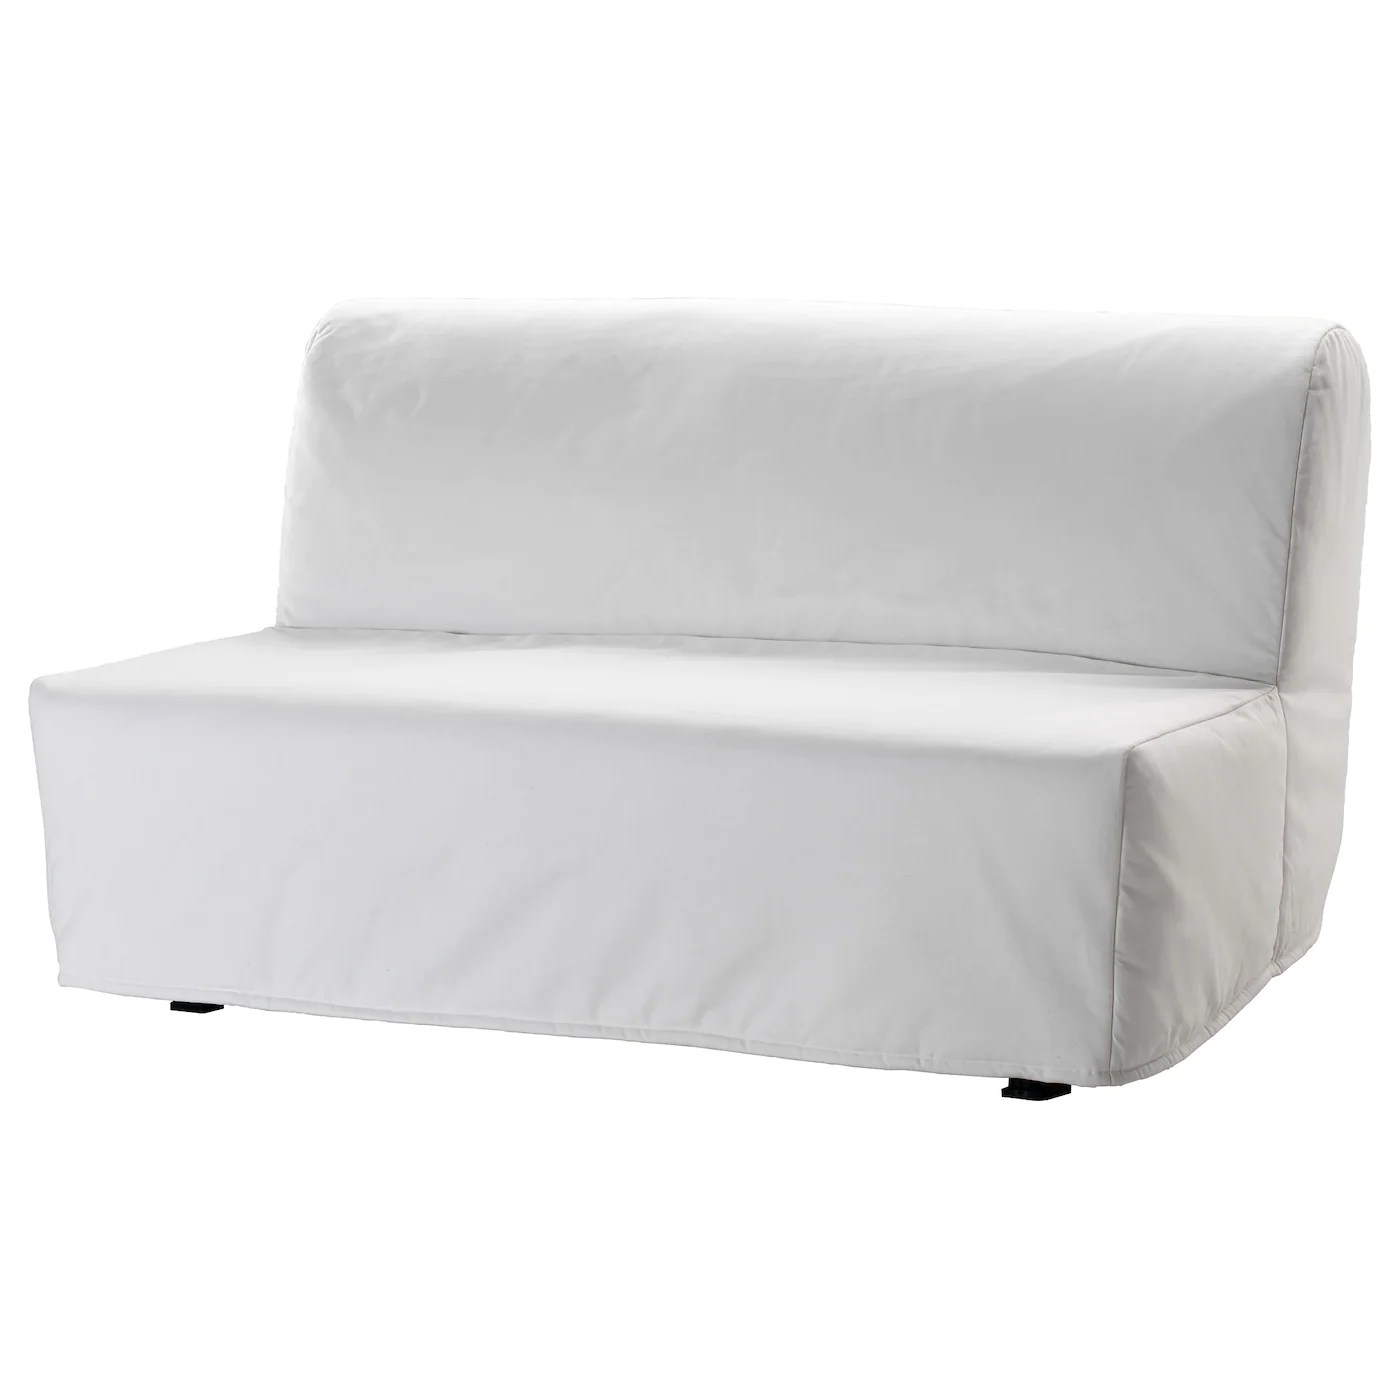 lycksele chair bed chairs on wheels hÅvet two seat sofa ransta white ikea